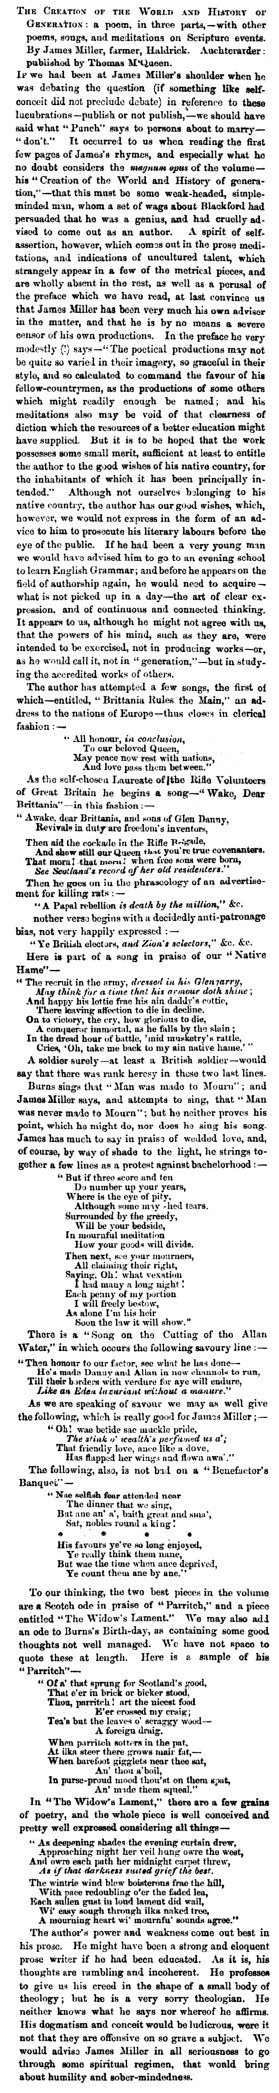 March 1862 - James Miller's epic poem is published - Haldrick